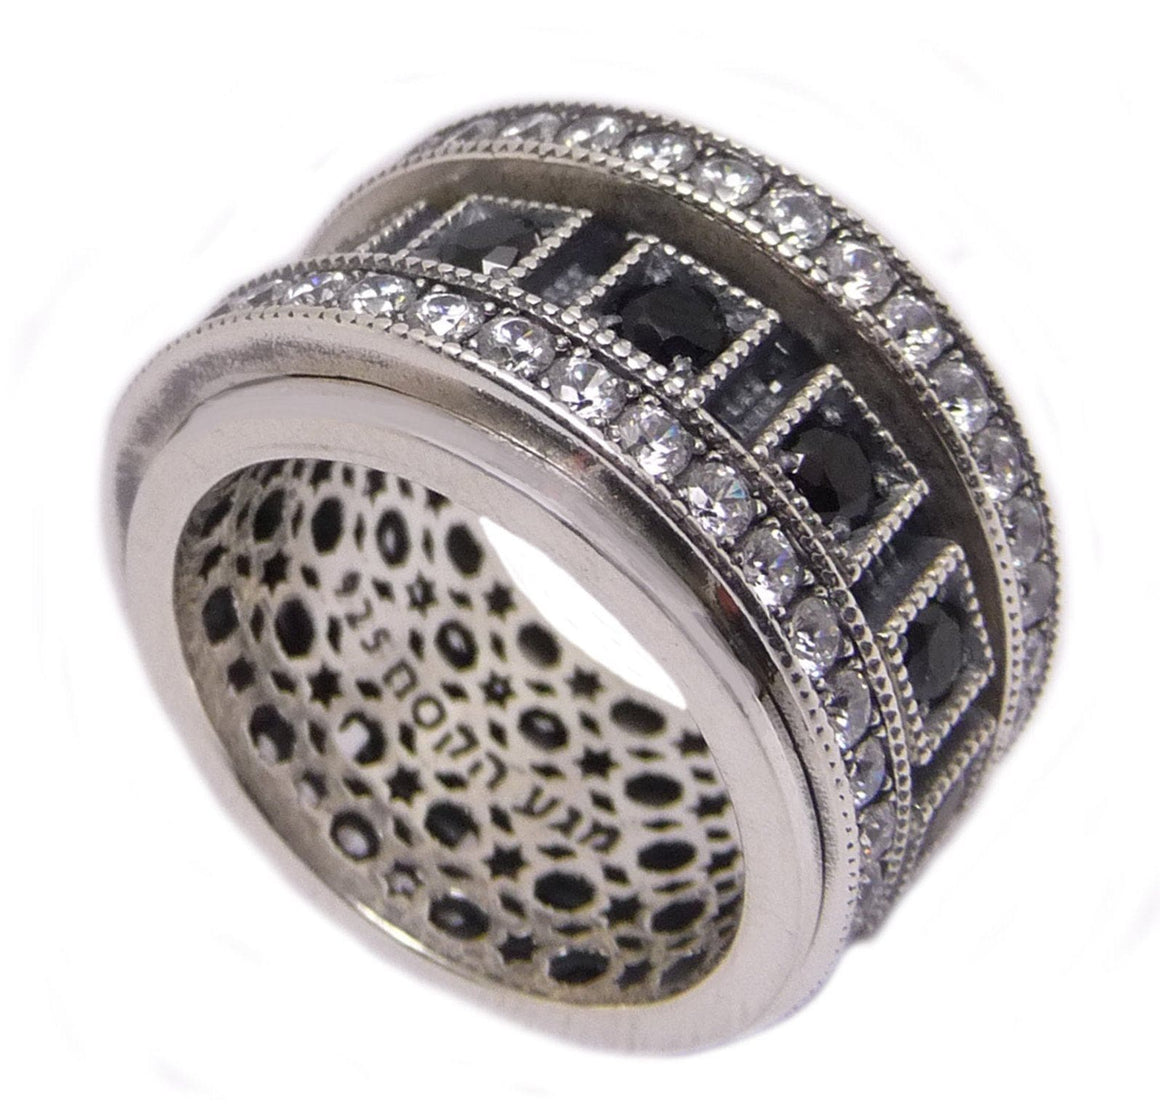 Rotating Sterling Silver Ring Inlaid Zirconian stones